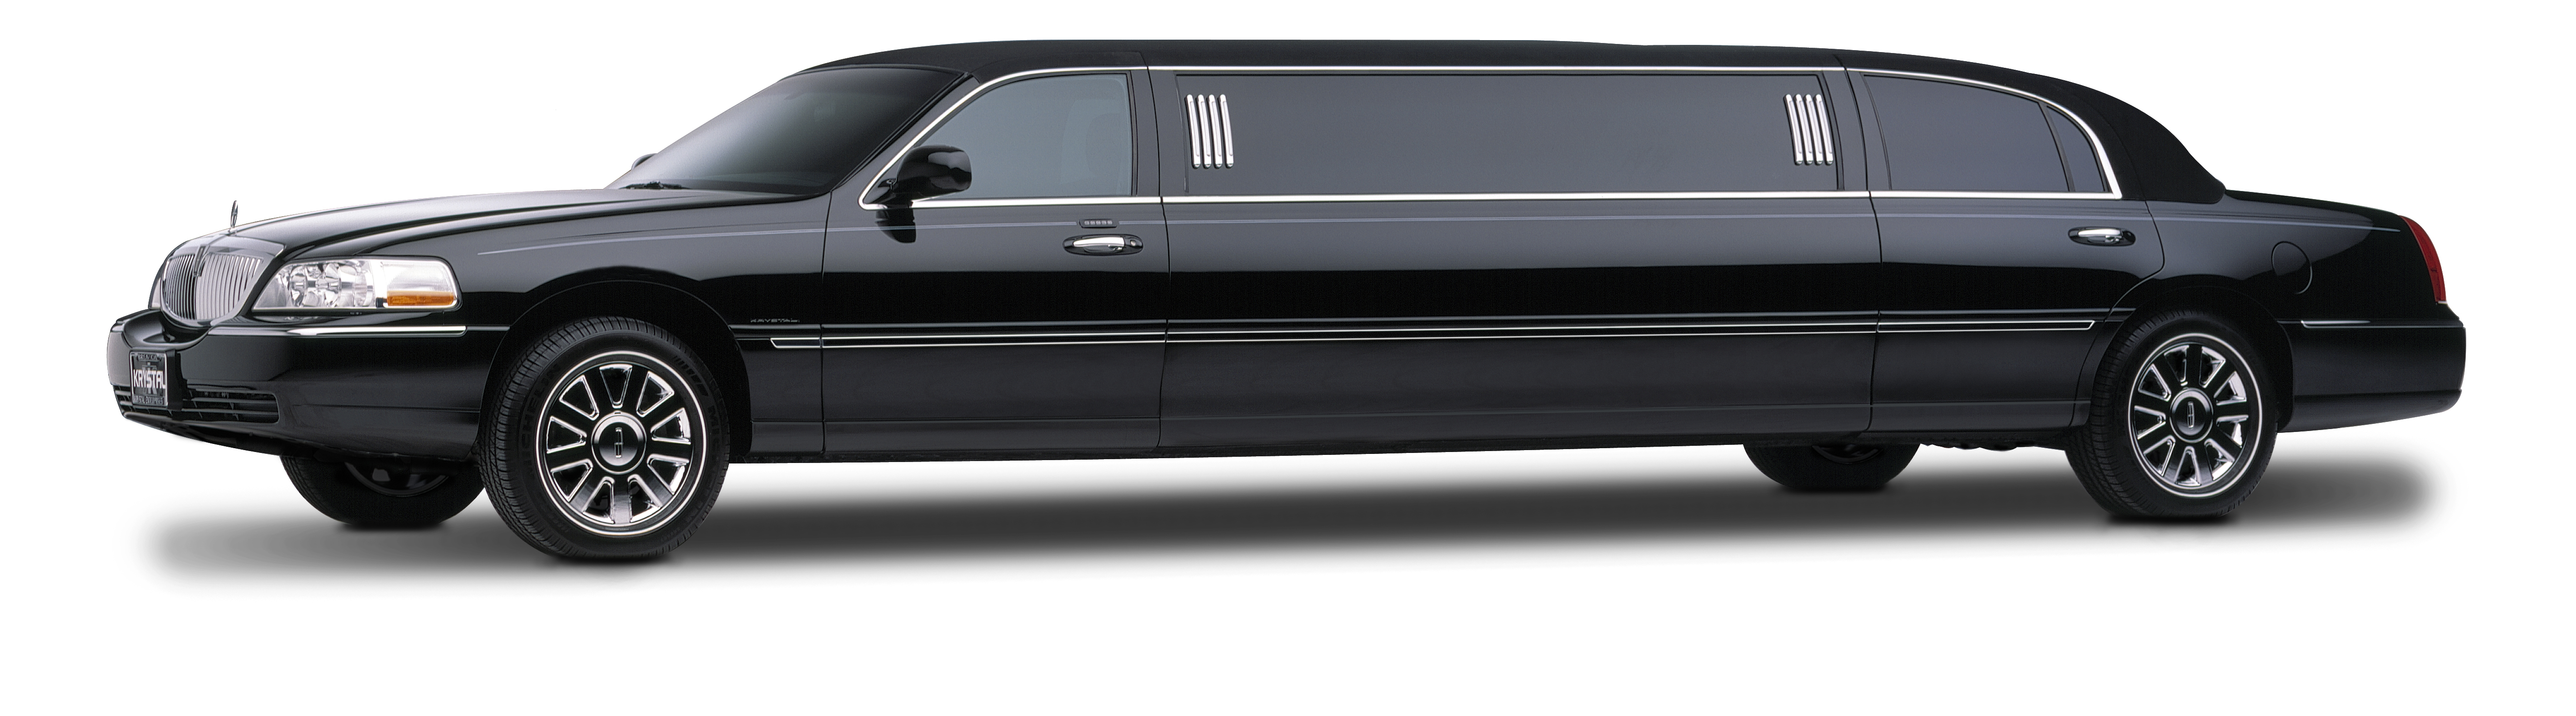 Deluxe Limousine & Party Bus Houston TX YP